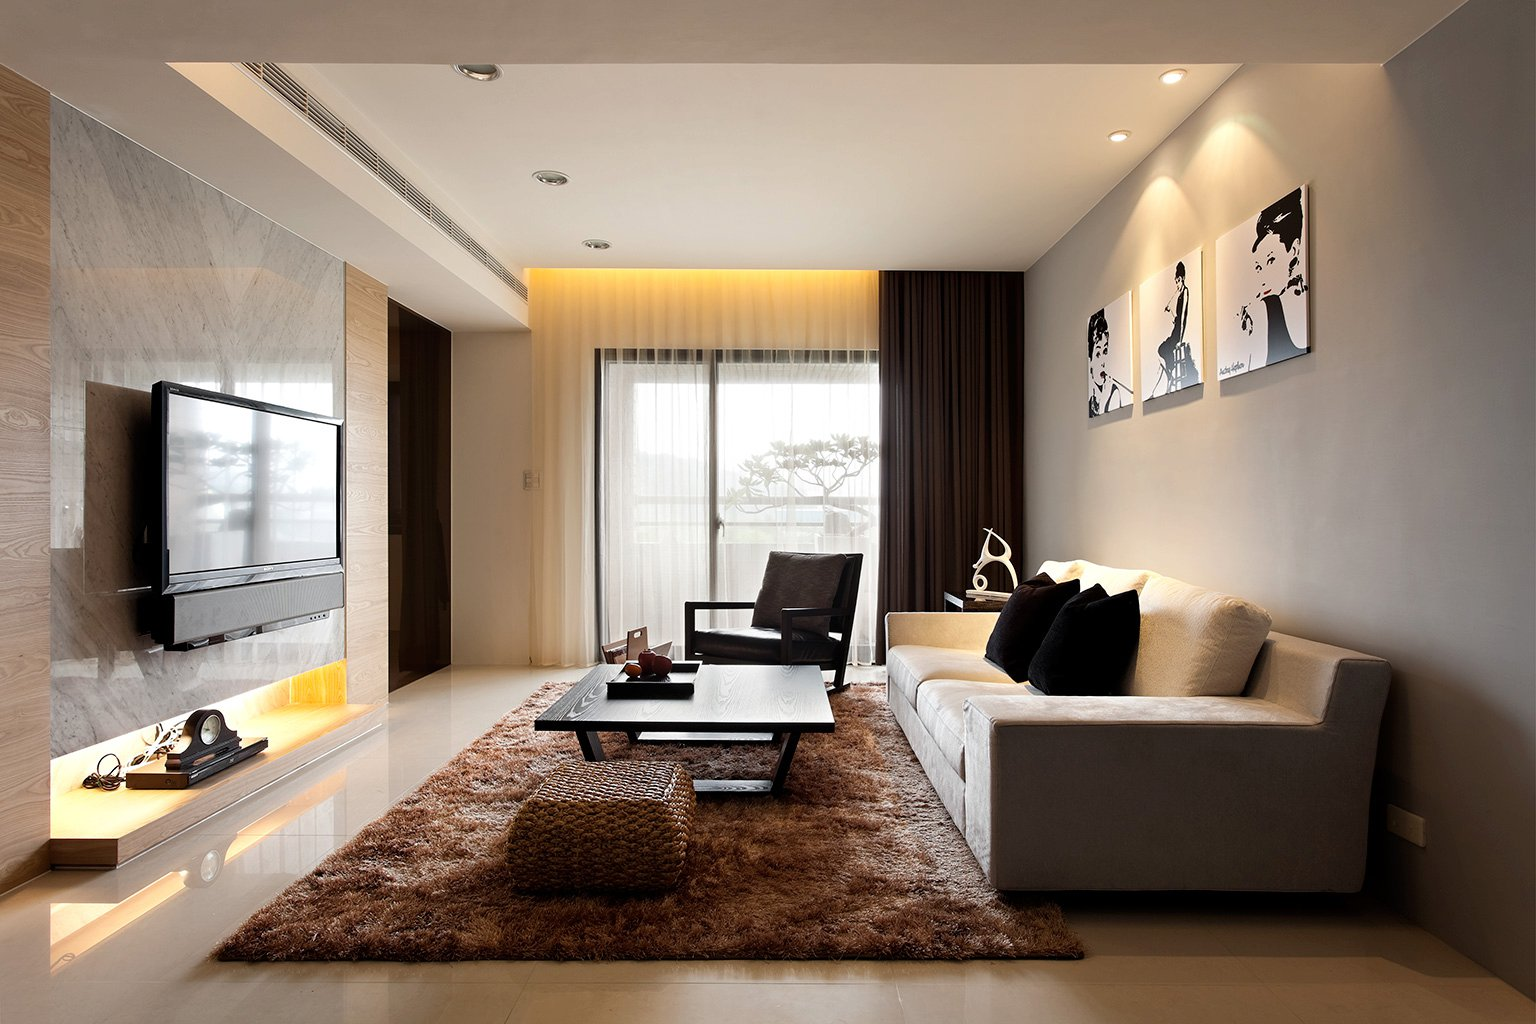 Modern Minimalist Decor with a Homey Flow